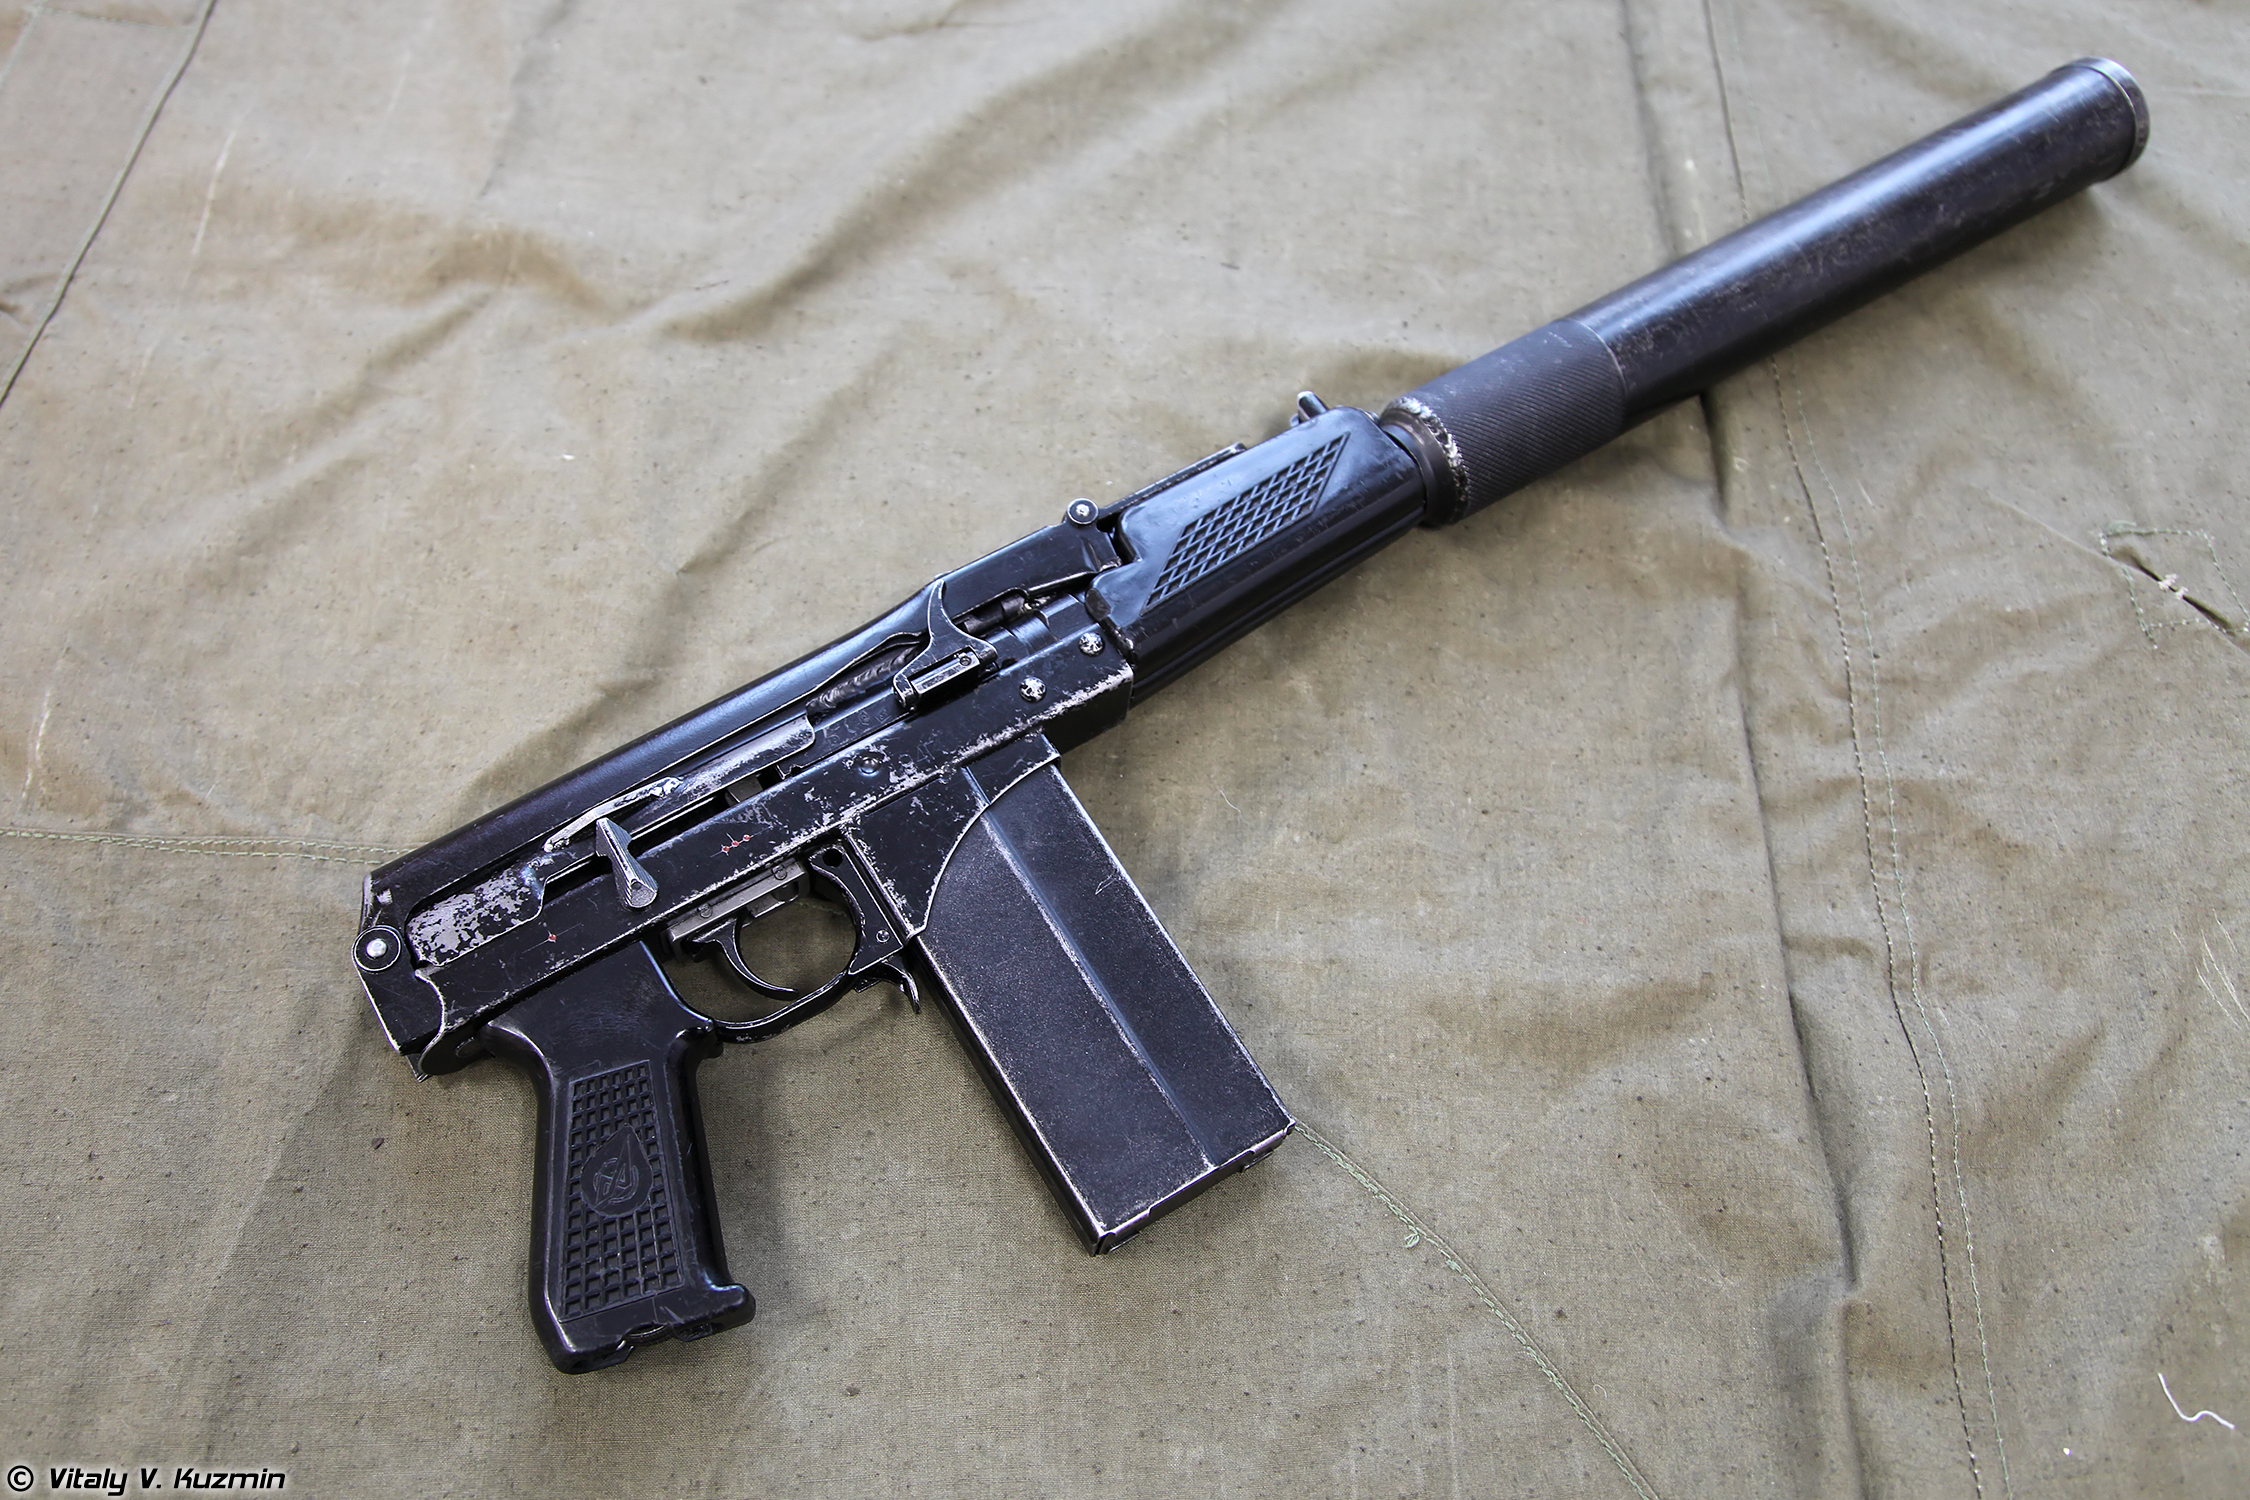 File:9mm KBP 9A-91 compact assault rifle - 17.jpg